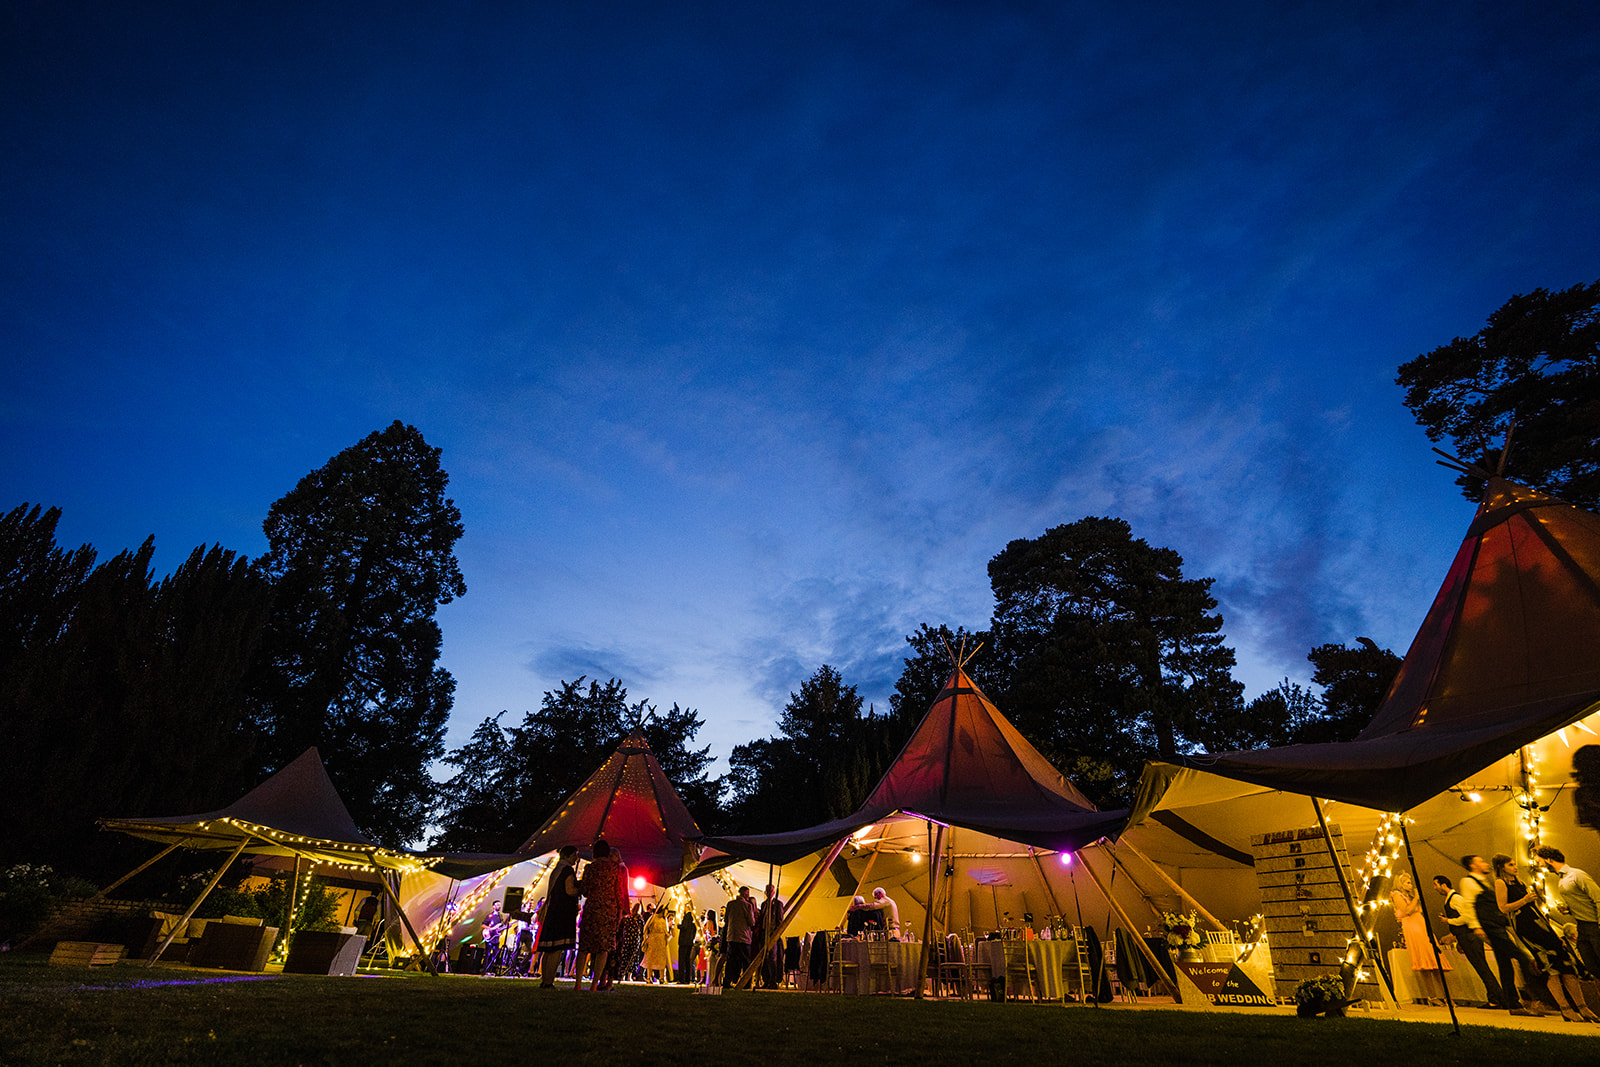 A tipi is full of wedding guests and lit up for a night time photo at relaxed wedding